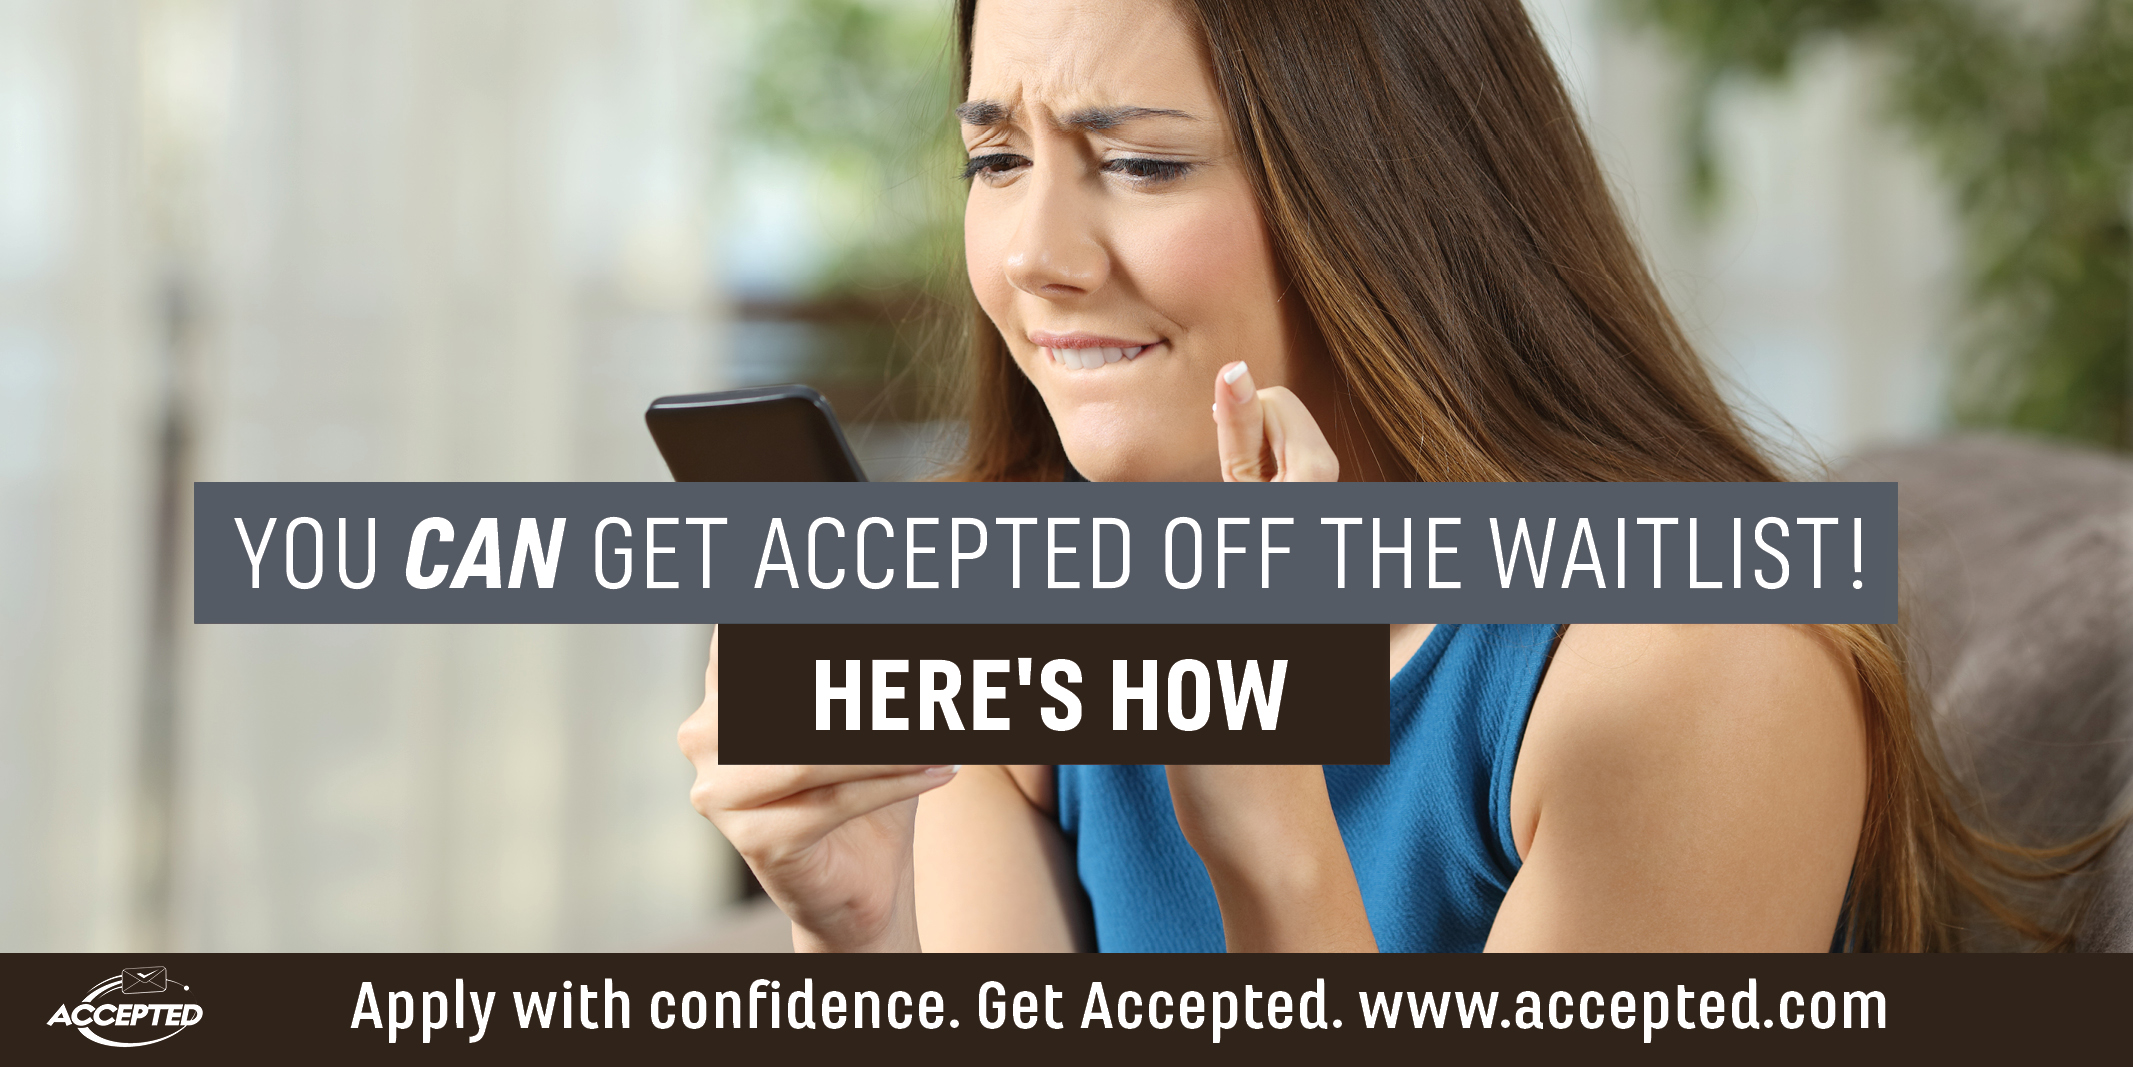 You can get accepted off the waitlist